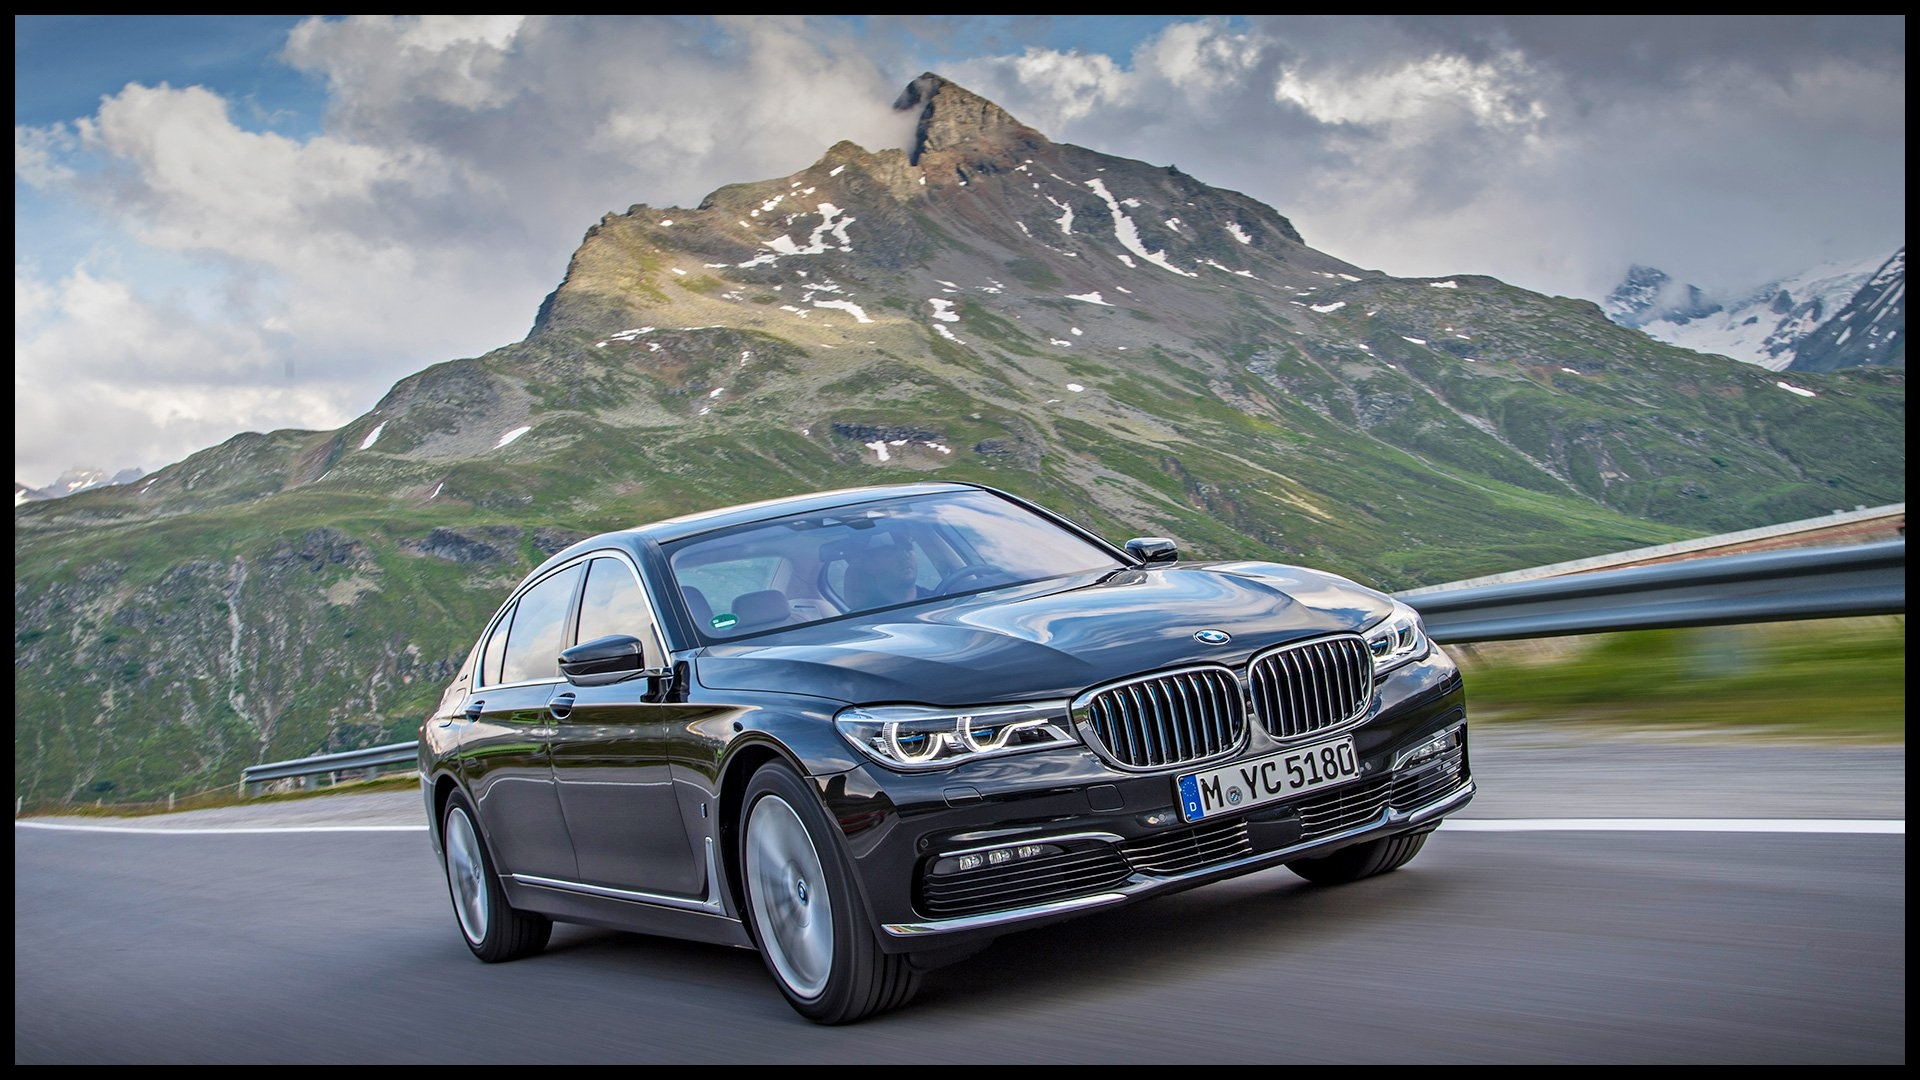 2018 BMW 740e xDrive iPerformance Hybrid Review Plug It in for 10 to 14 Miles of Electric Range The Drive